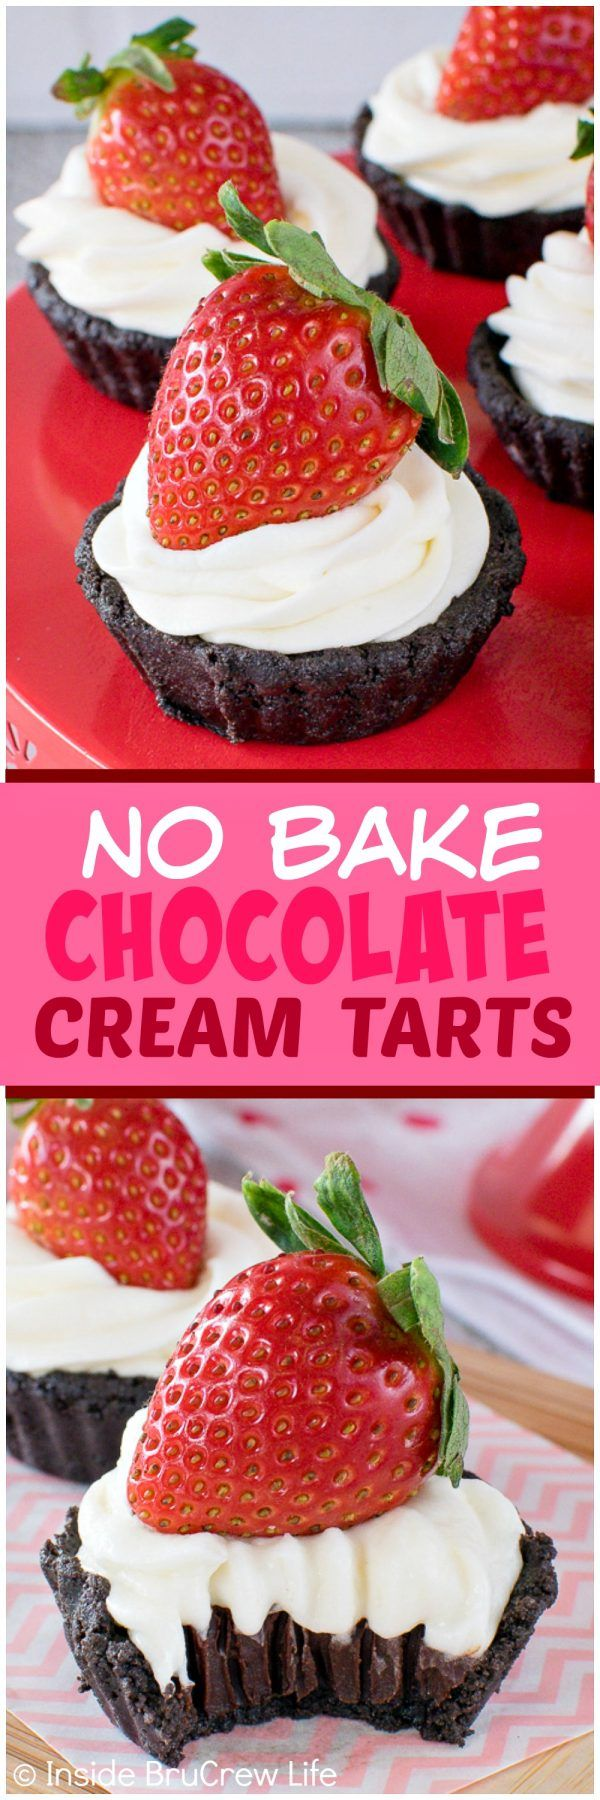 No Bake Chocolate Cream Tarts - easy no bake cookie crust filled with chocolate and a creamy topping! Great dessert recipe for Valentine's day!